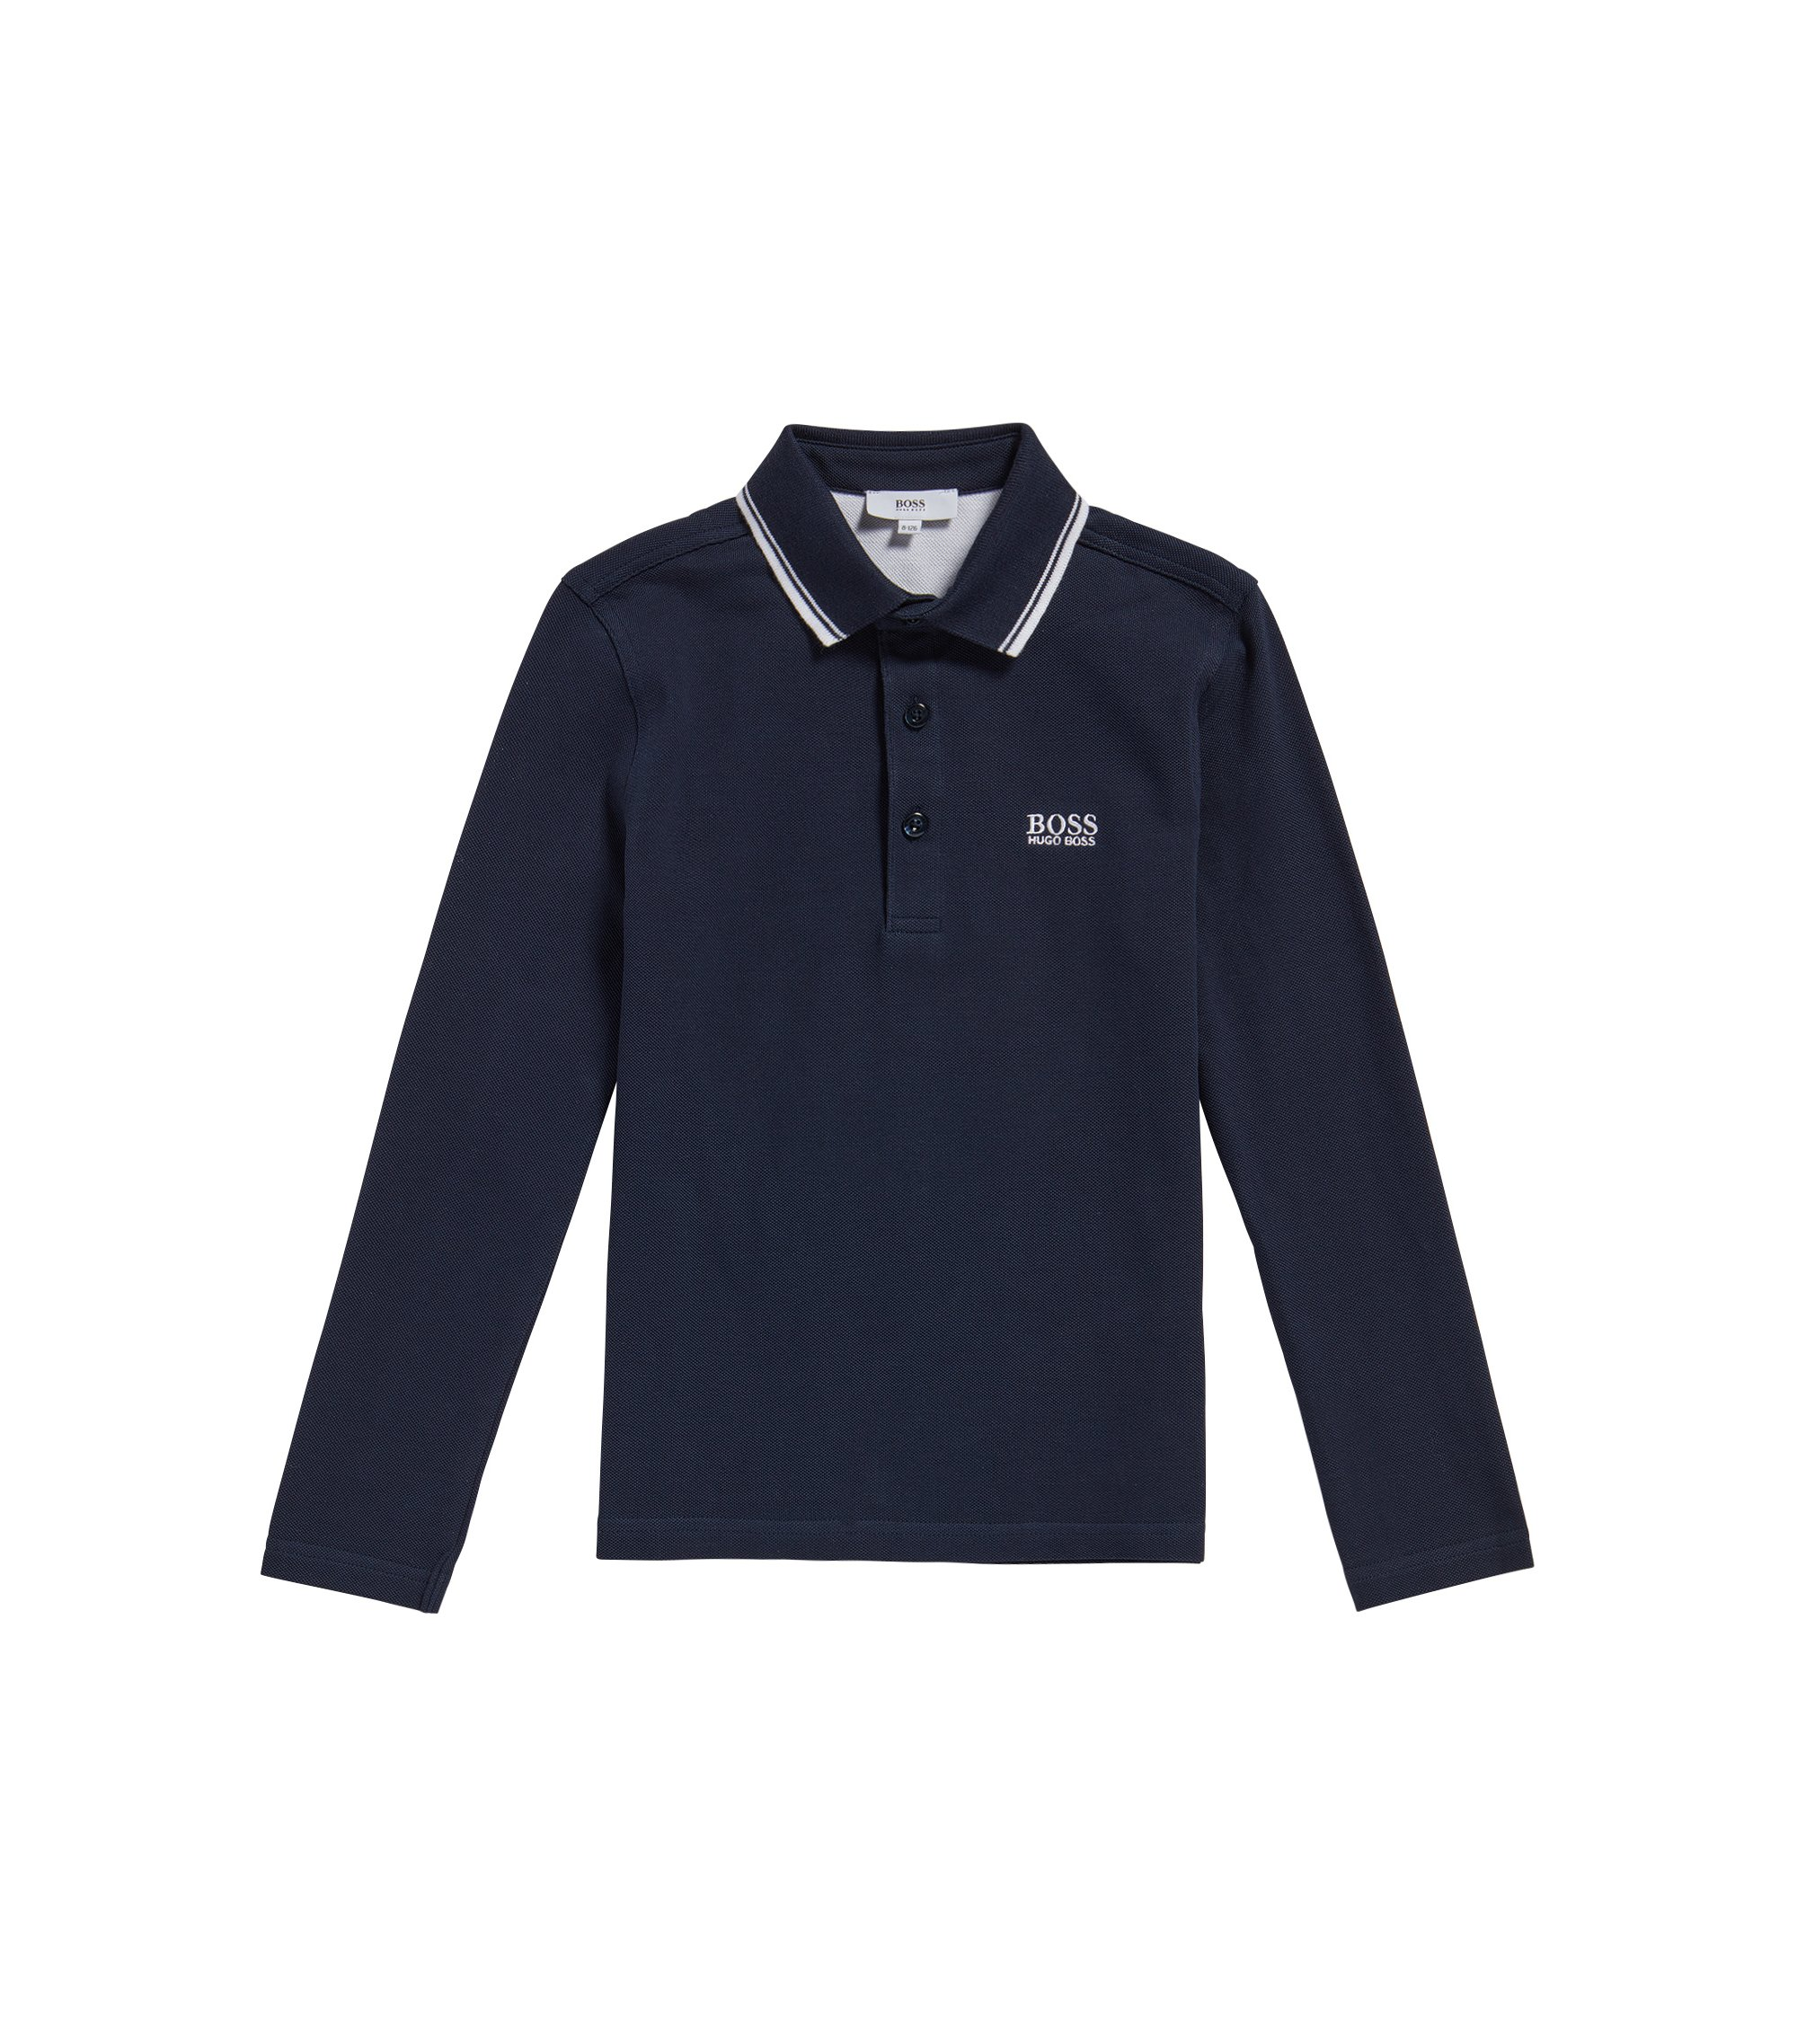 Kids' polo shirt in cotton with striped details: 'J25V24', Dark Blue